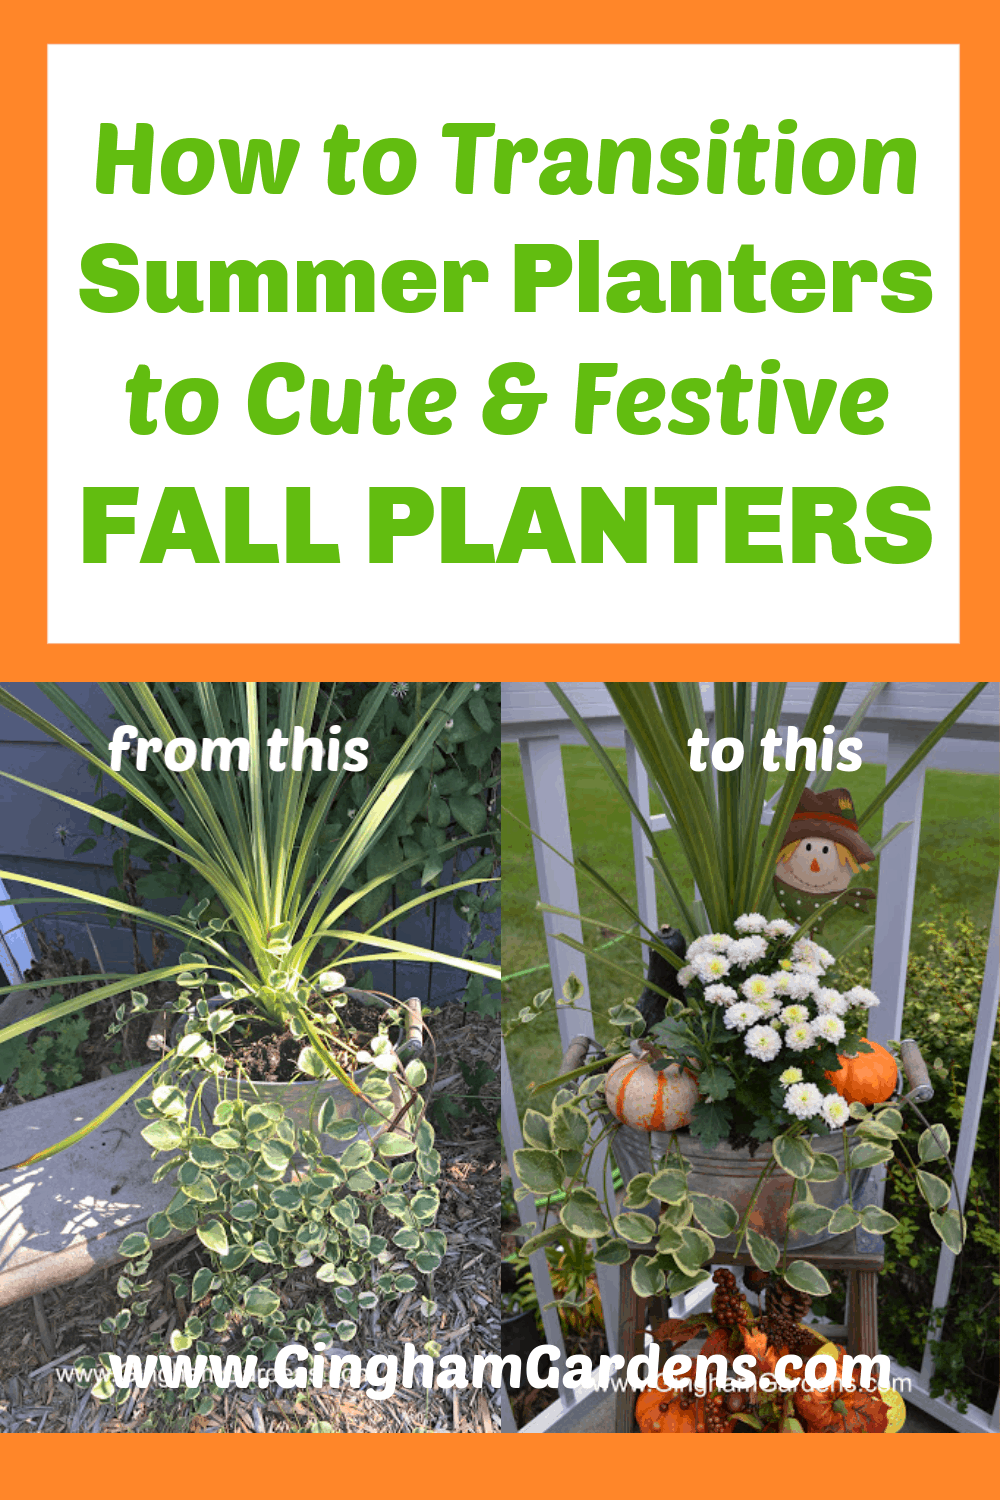 Images of Flower Planters with Text Overlay - How to transition Summer Planters to Cute & Festive Fall Planters